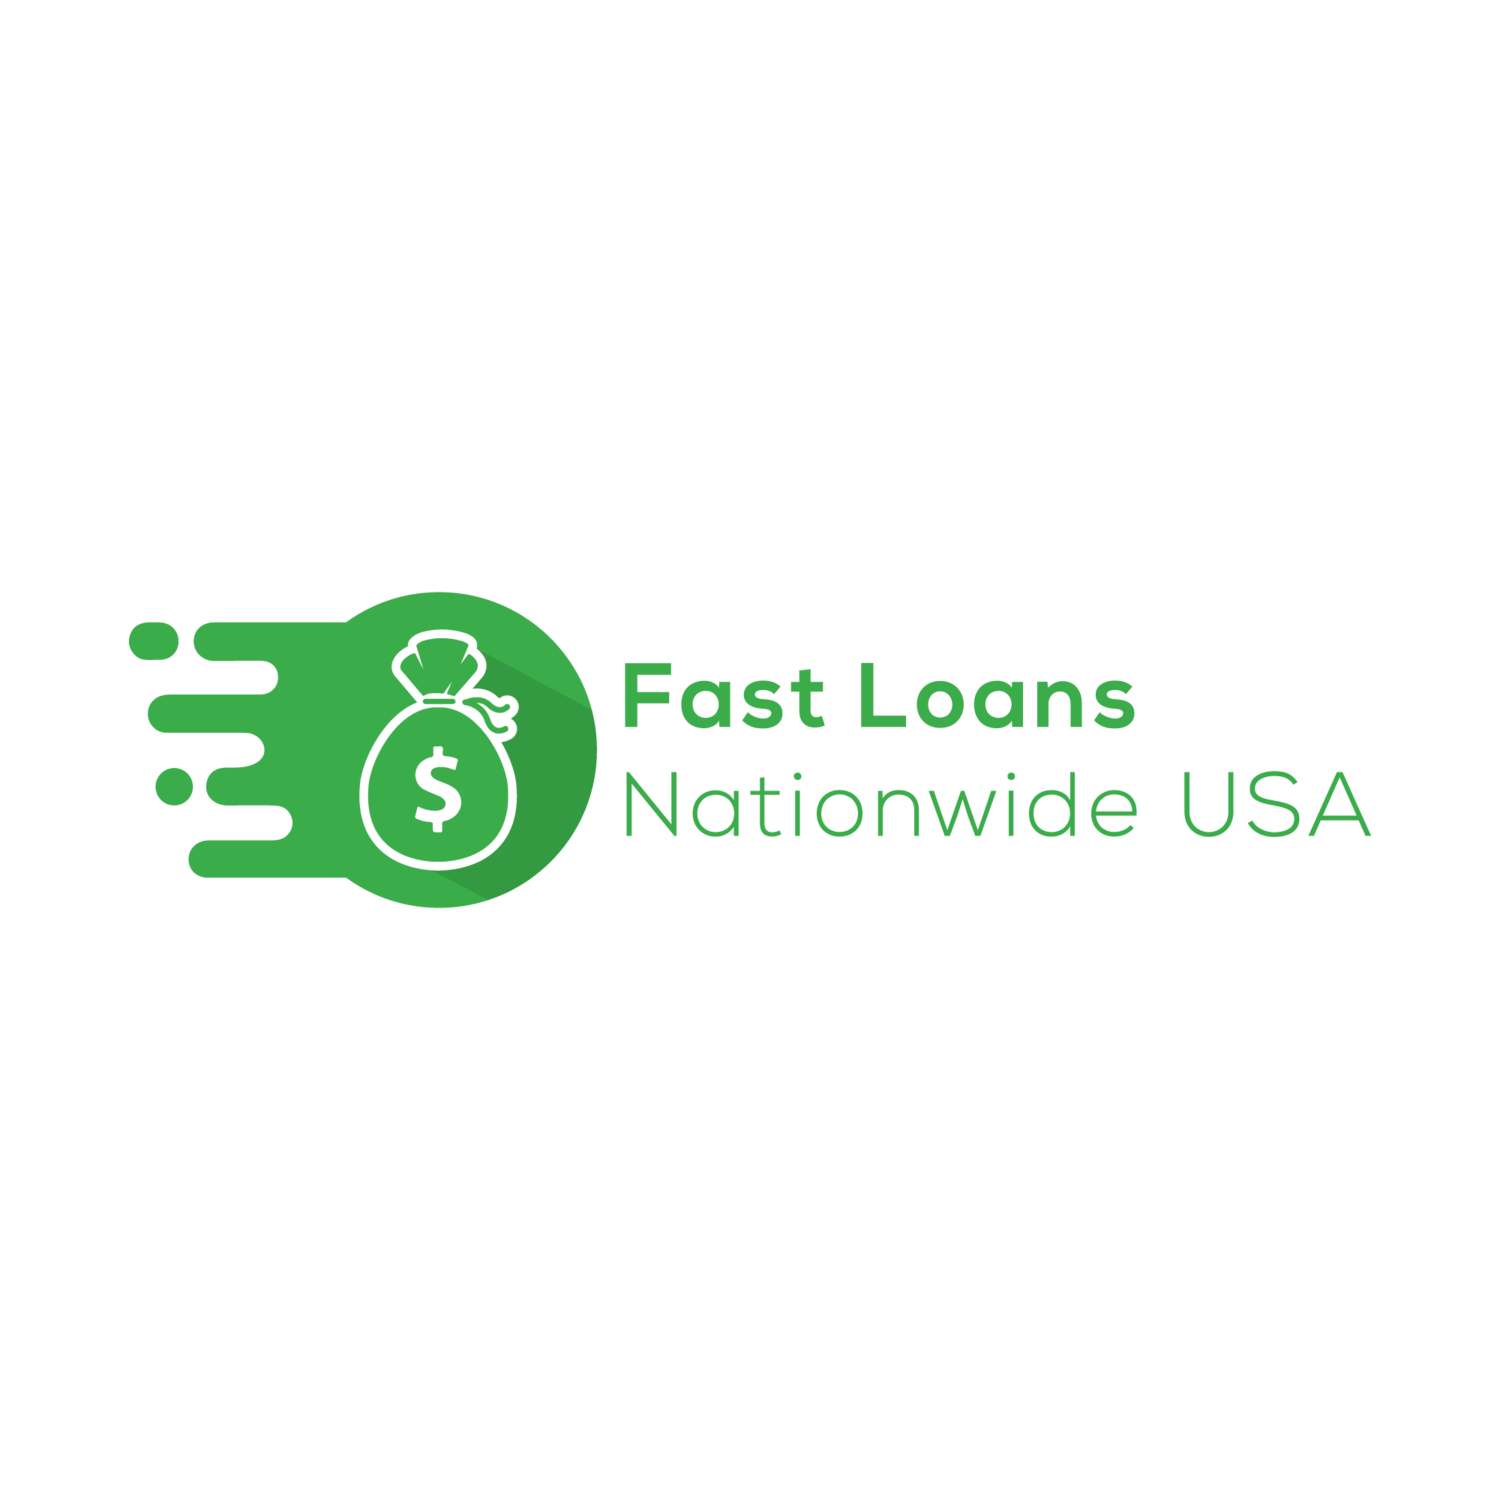 Fulfill Dreams with Easy Loans from Fast Loans Nationwide USA